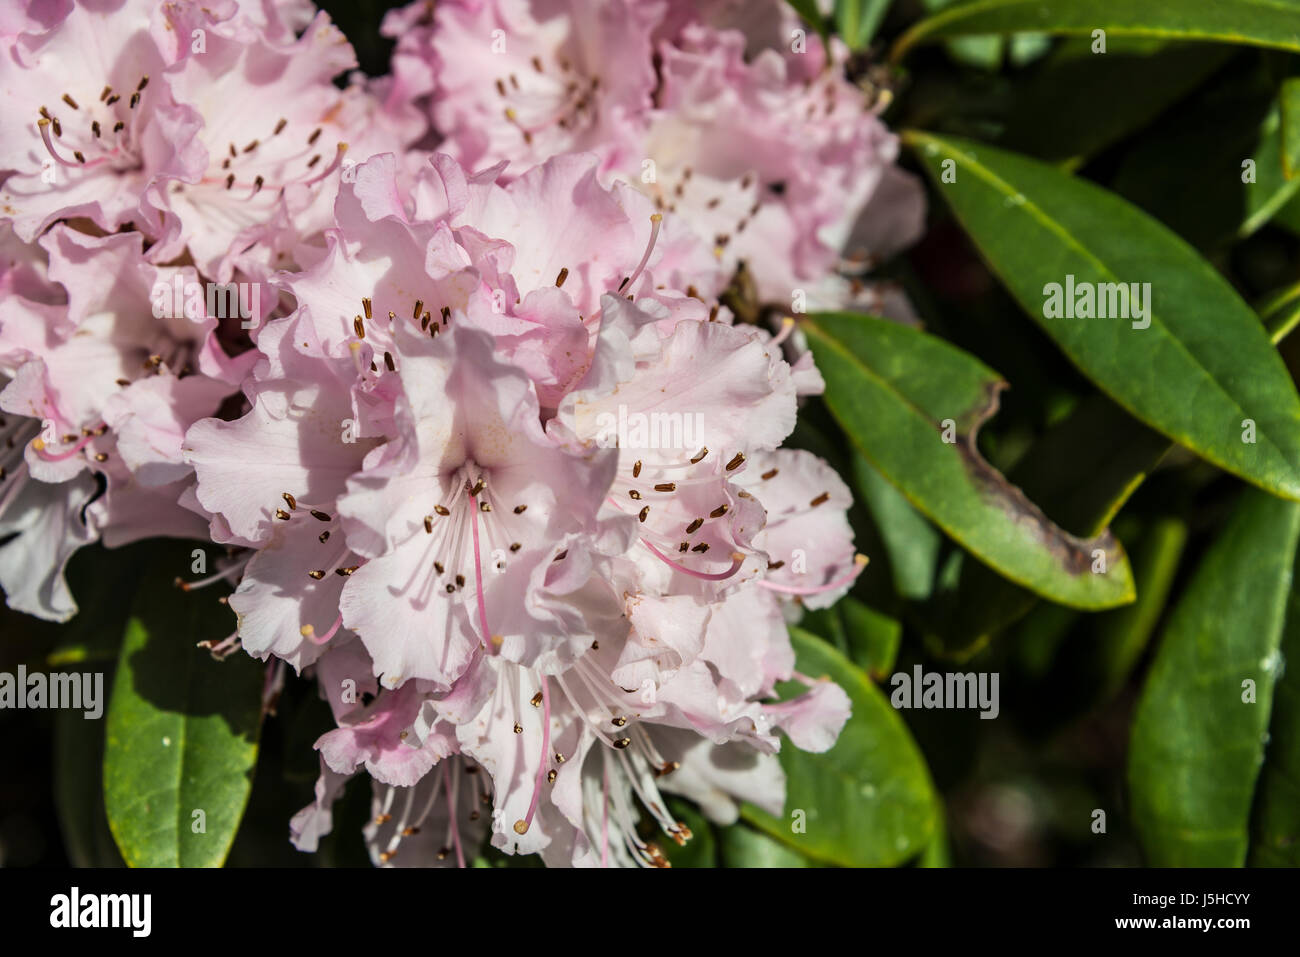 Rhododendron 'Christmas Cheer' in flower in spring - Stock Image